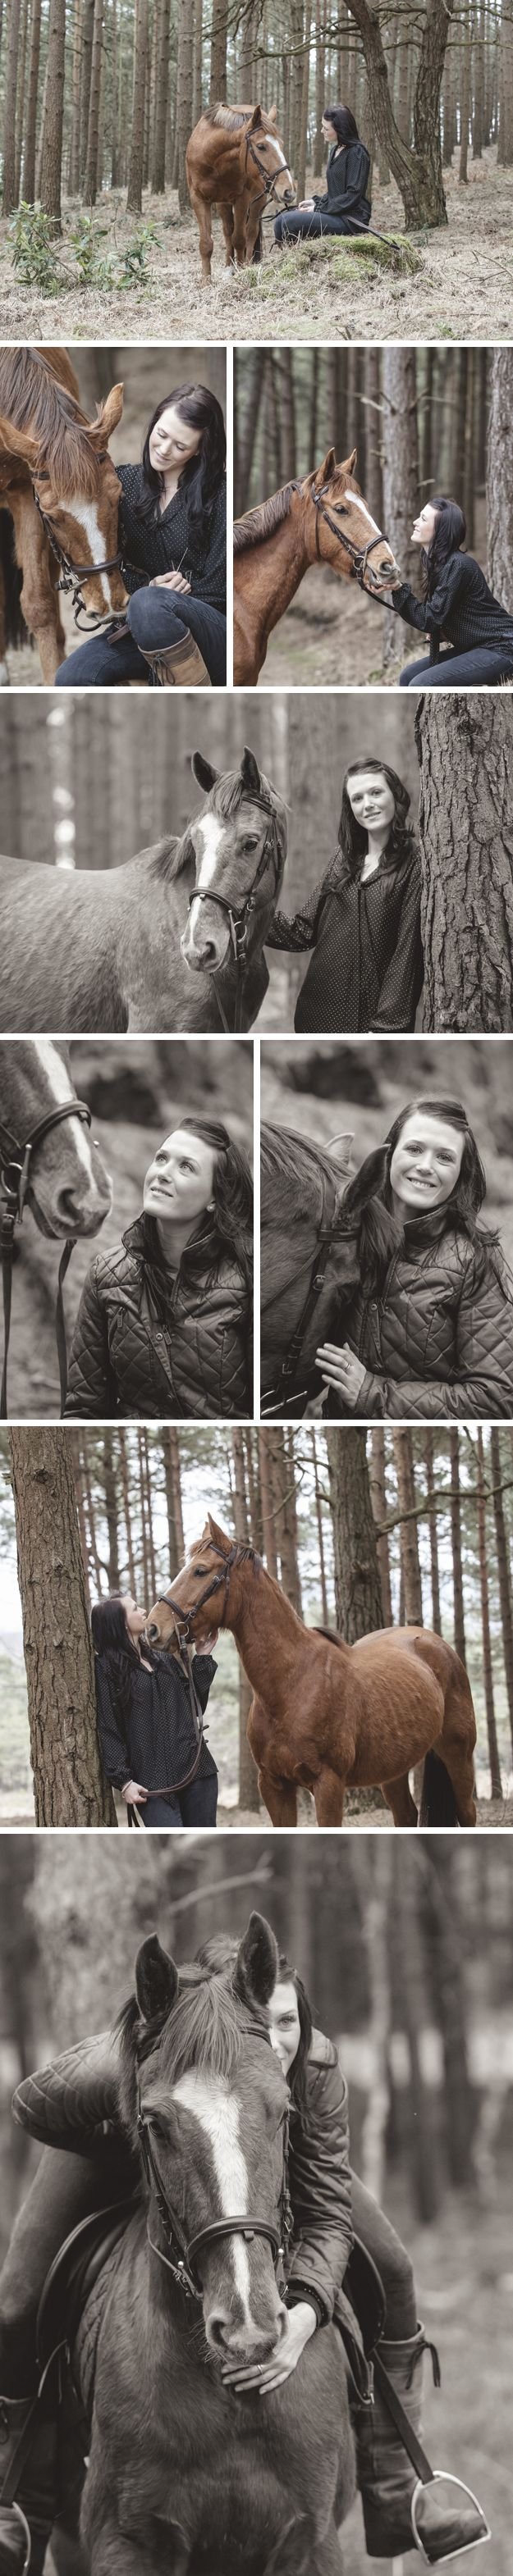 Equine Photography I want pics of me and my horses like this!!